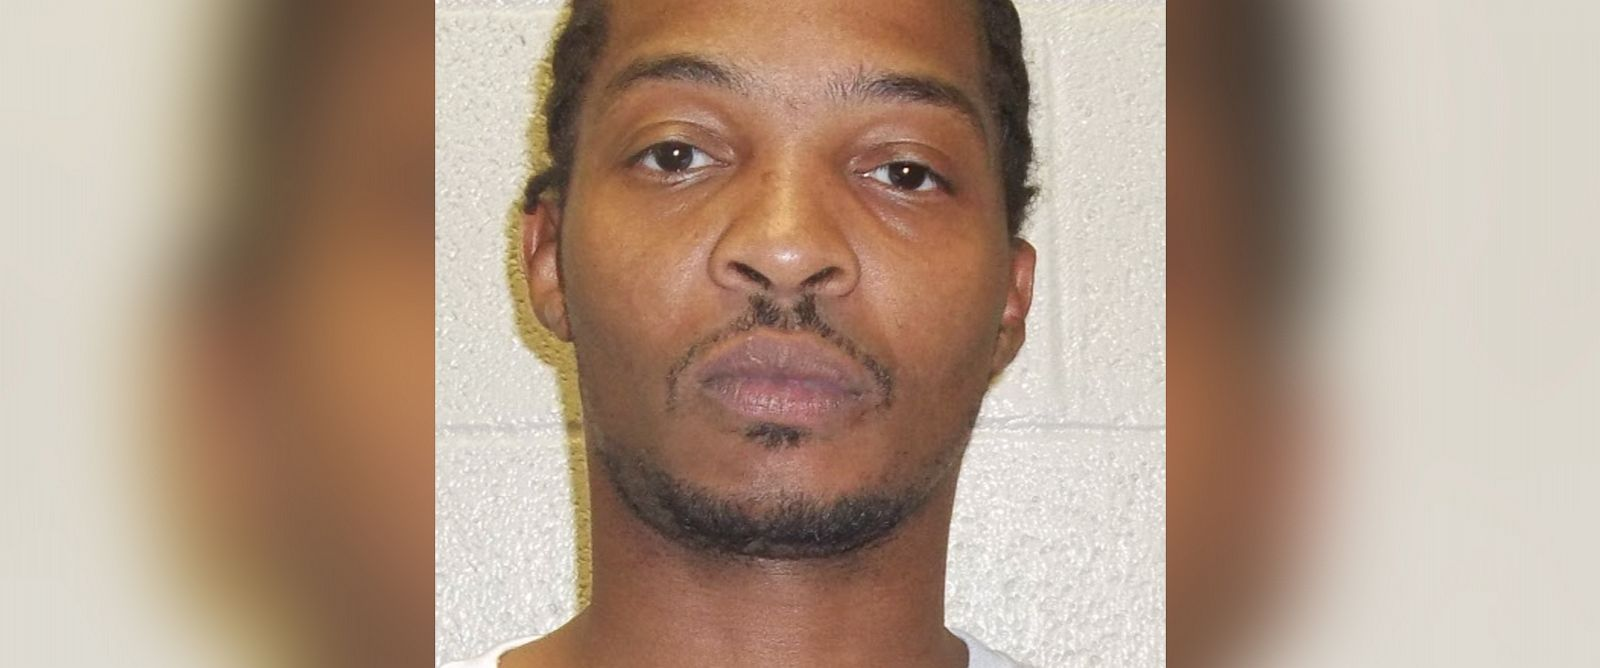 PHOTO: A mug shot of Rumain Brisbon after a February 2012 charge at the Arizona Department of Corrections.